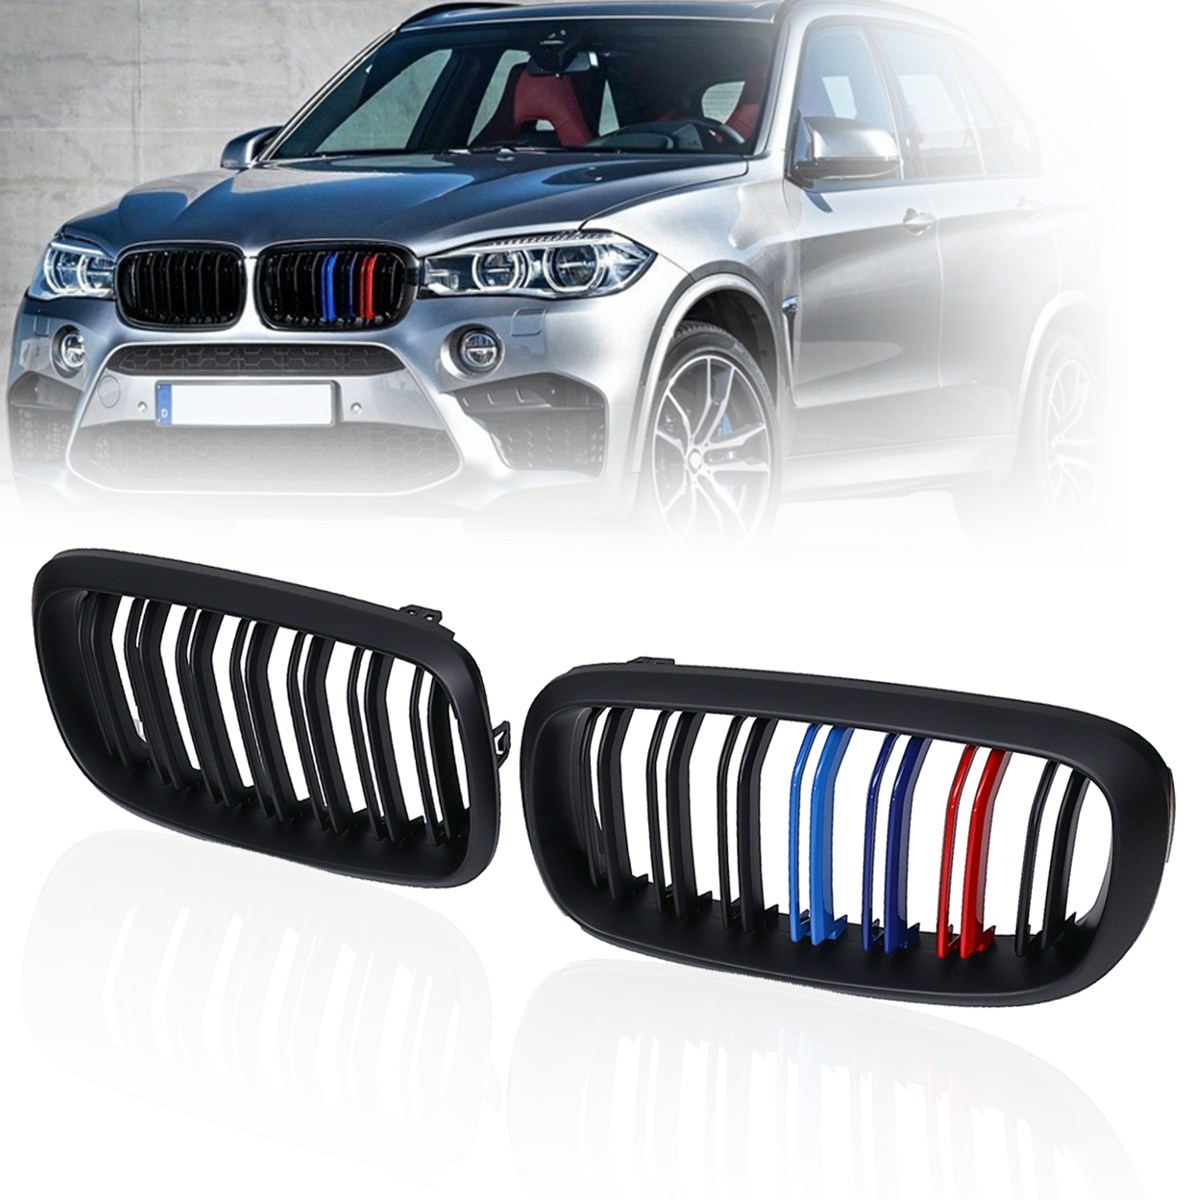 #28-F15MFG3B Pair Matte Gloss Black M Color Front Double Slat Kidney Grille For BMW F86 F15 F16 X5 X6 X5M F85 X6M F86 2016 2017 x5 f15 x6 f16 abs gloss black grill for bmw x5 x6 f15 f16 front bumper grille kidney mesh